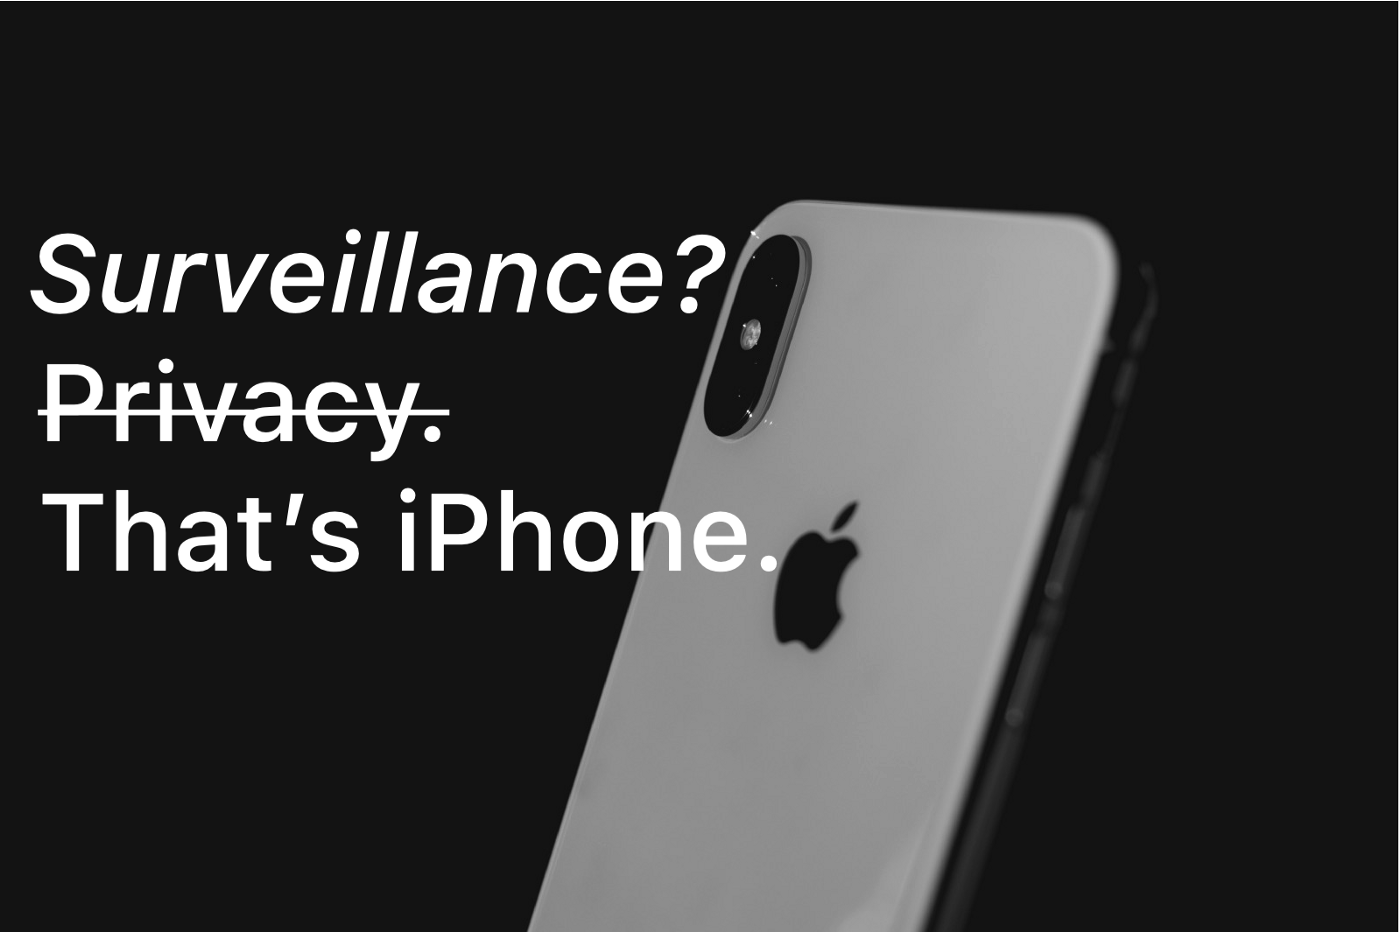 Privacy. That's iPhone. Surveillance. CSAM detection. Scanning iMessage nudes